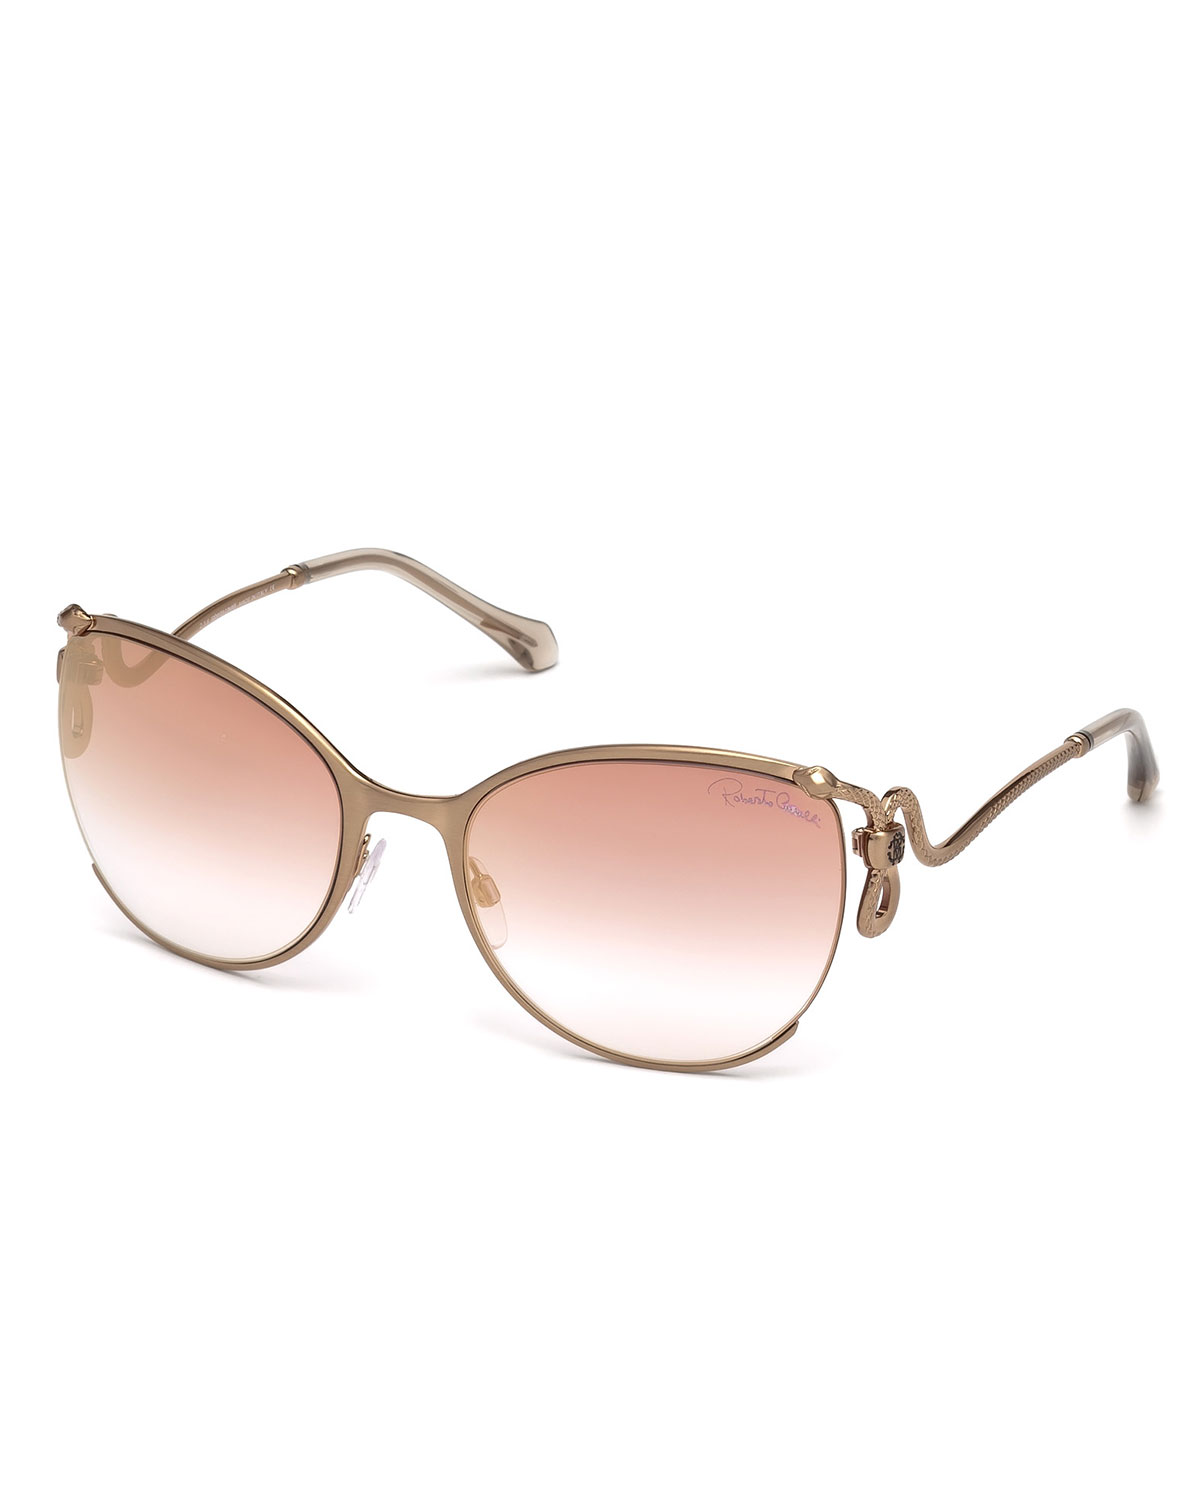 6cd4c3ff734c Roberto Cavalli Semi-Rimless Square Snake Sunglasses, Rose Gold Pink ...